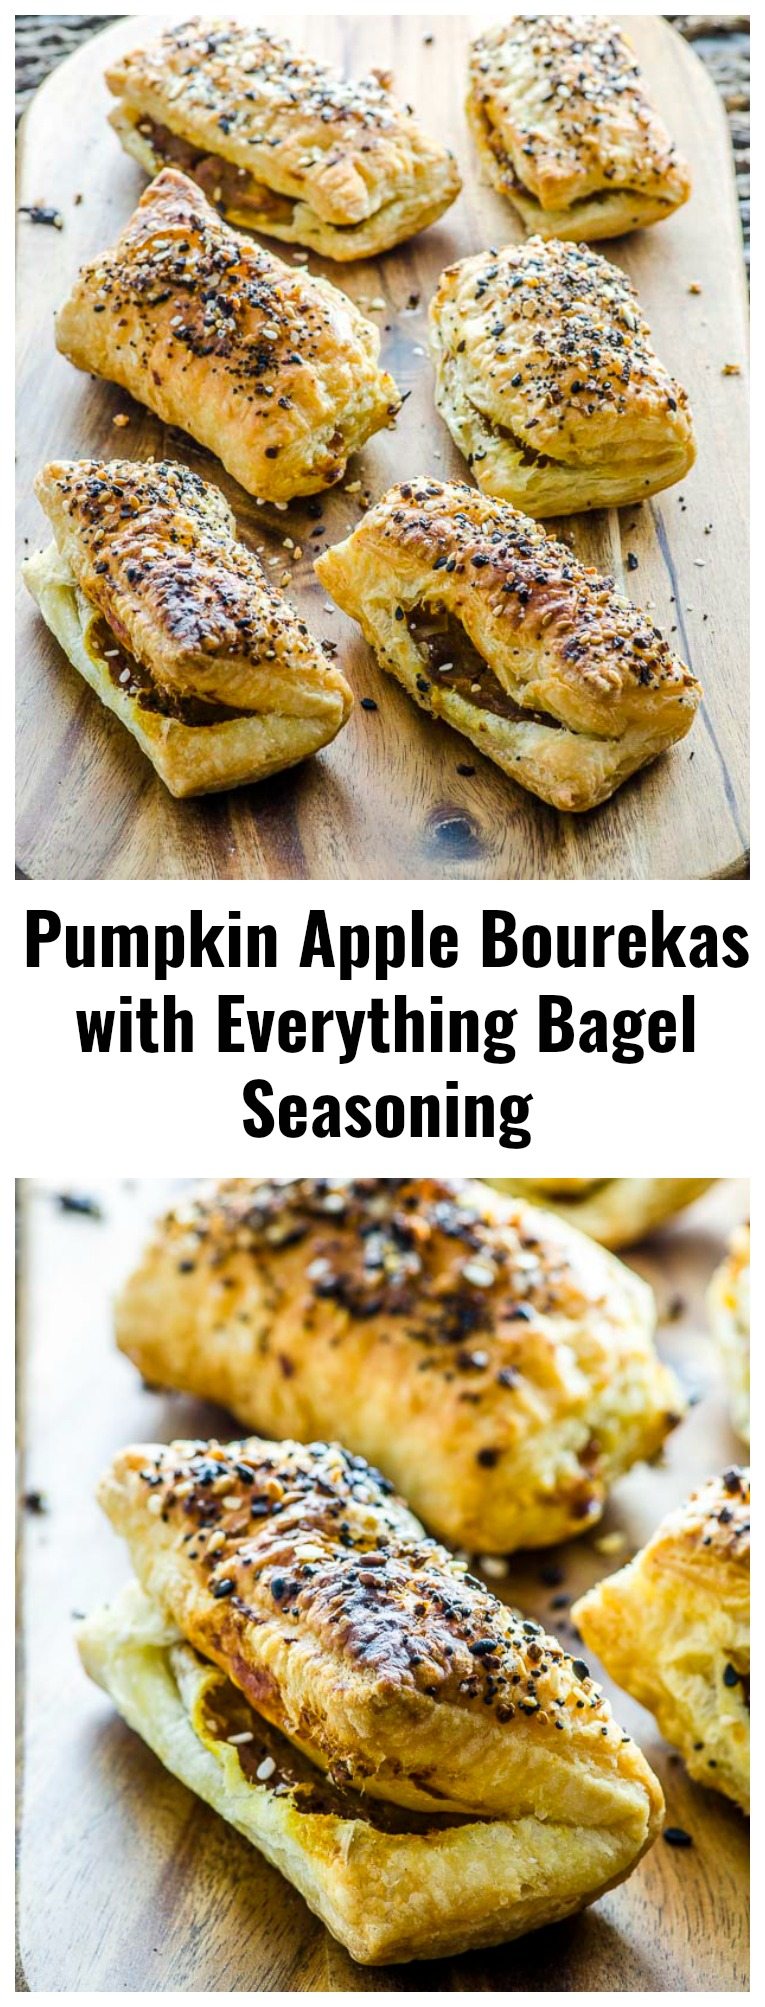 There are appetizers... and then there are these Pumpkin Apple Bourekas with Everything Bagel Seasoning! Crunchy on the outside, velvety and buttery on the inside, topped with everything bagel seasoning for a punch of flavor. A heavenly bite of goodness!